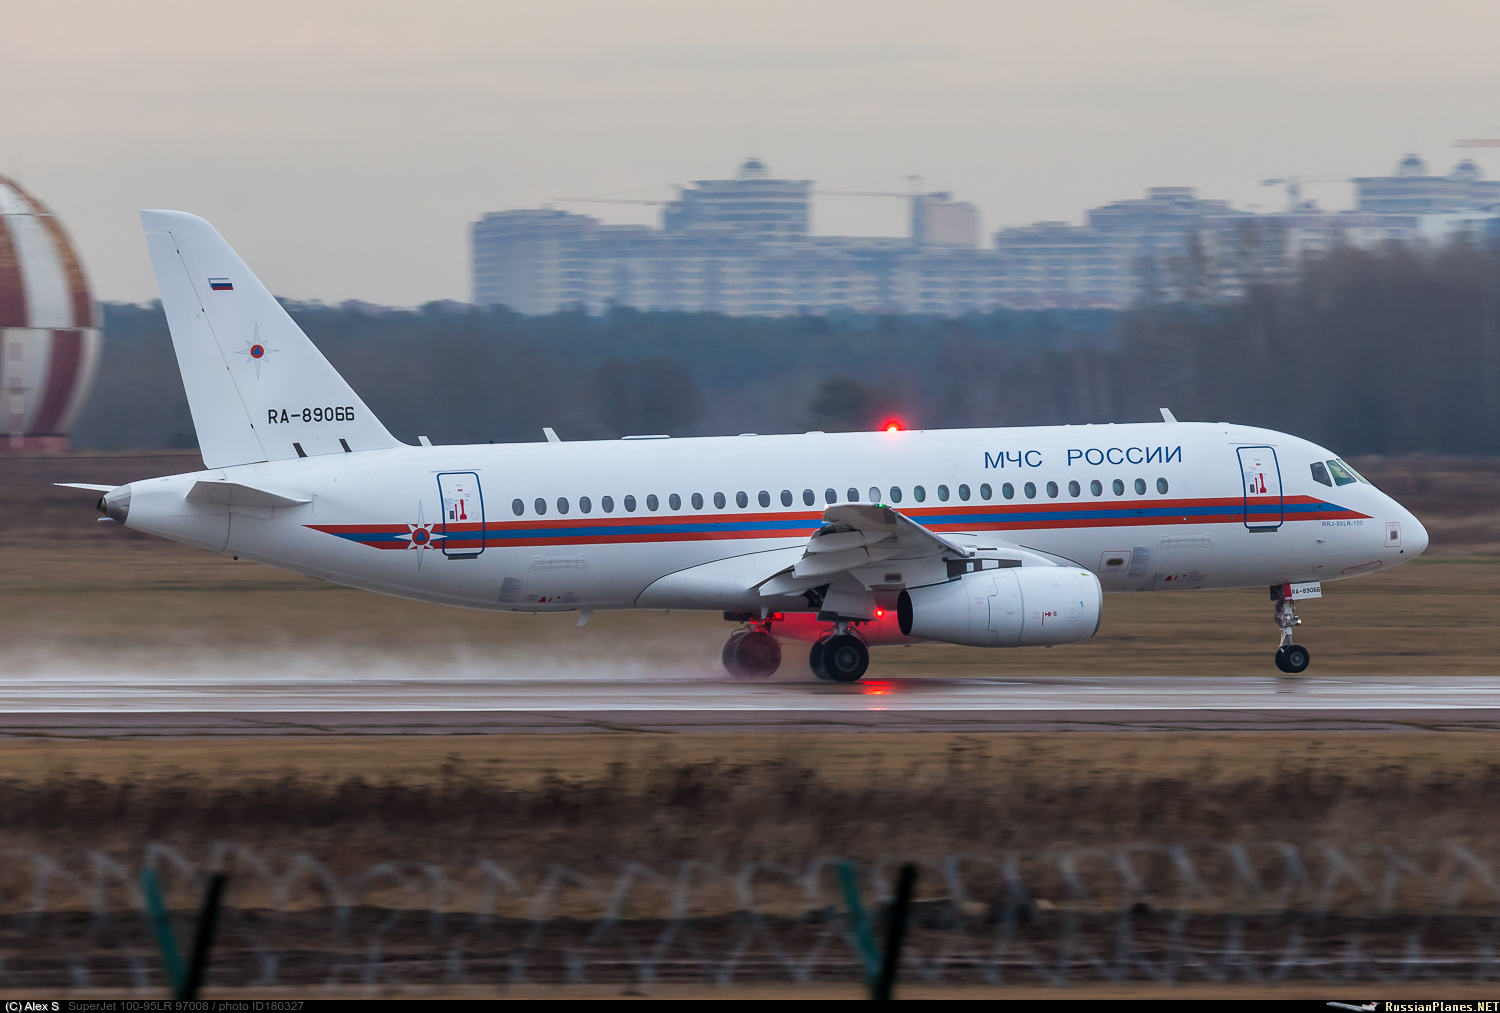 http://russianplanes.net/images/to181000/180327.jpg